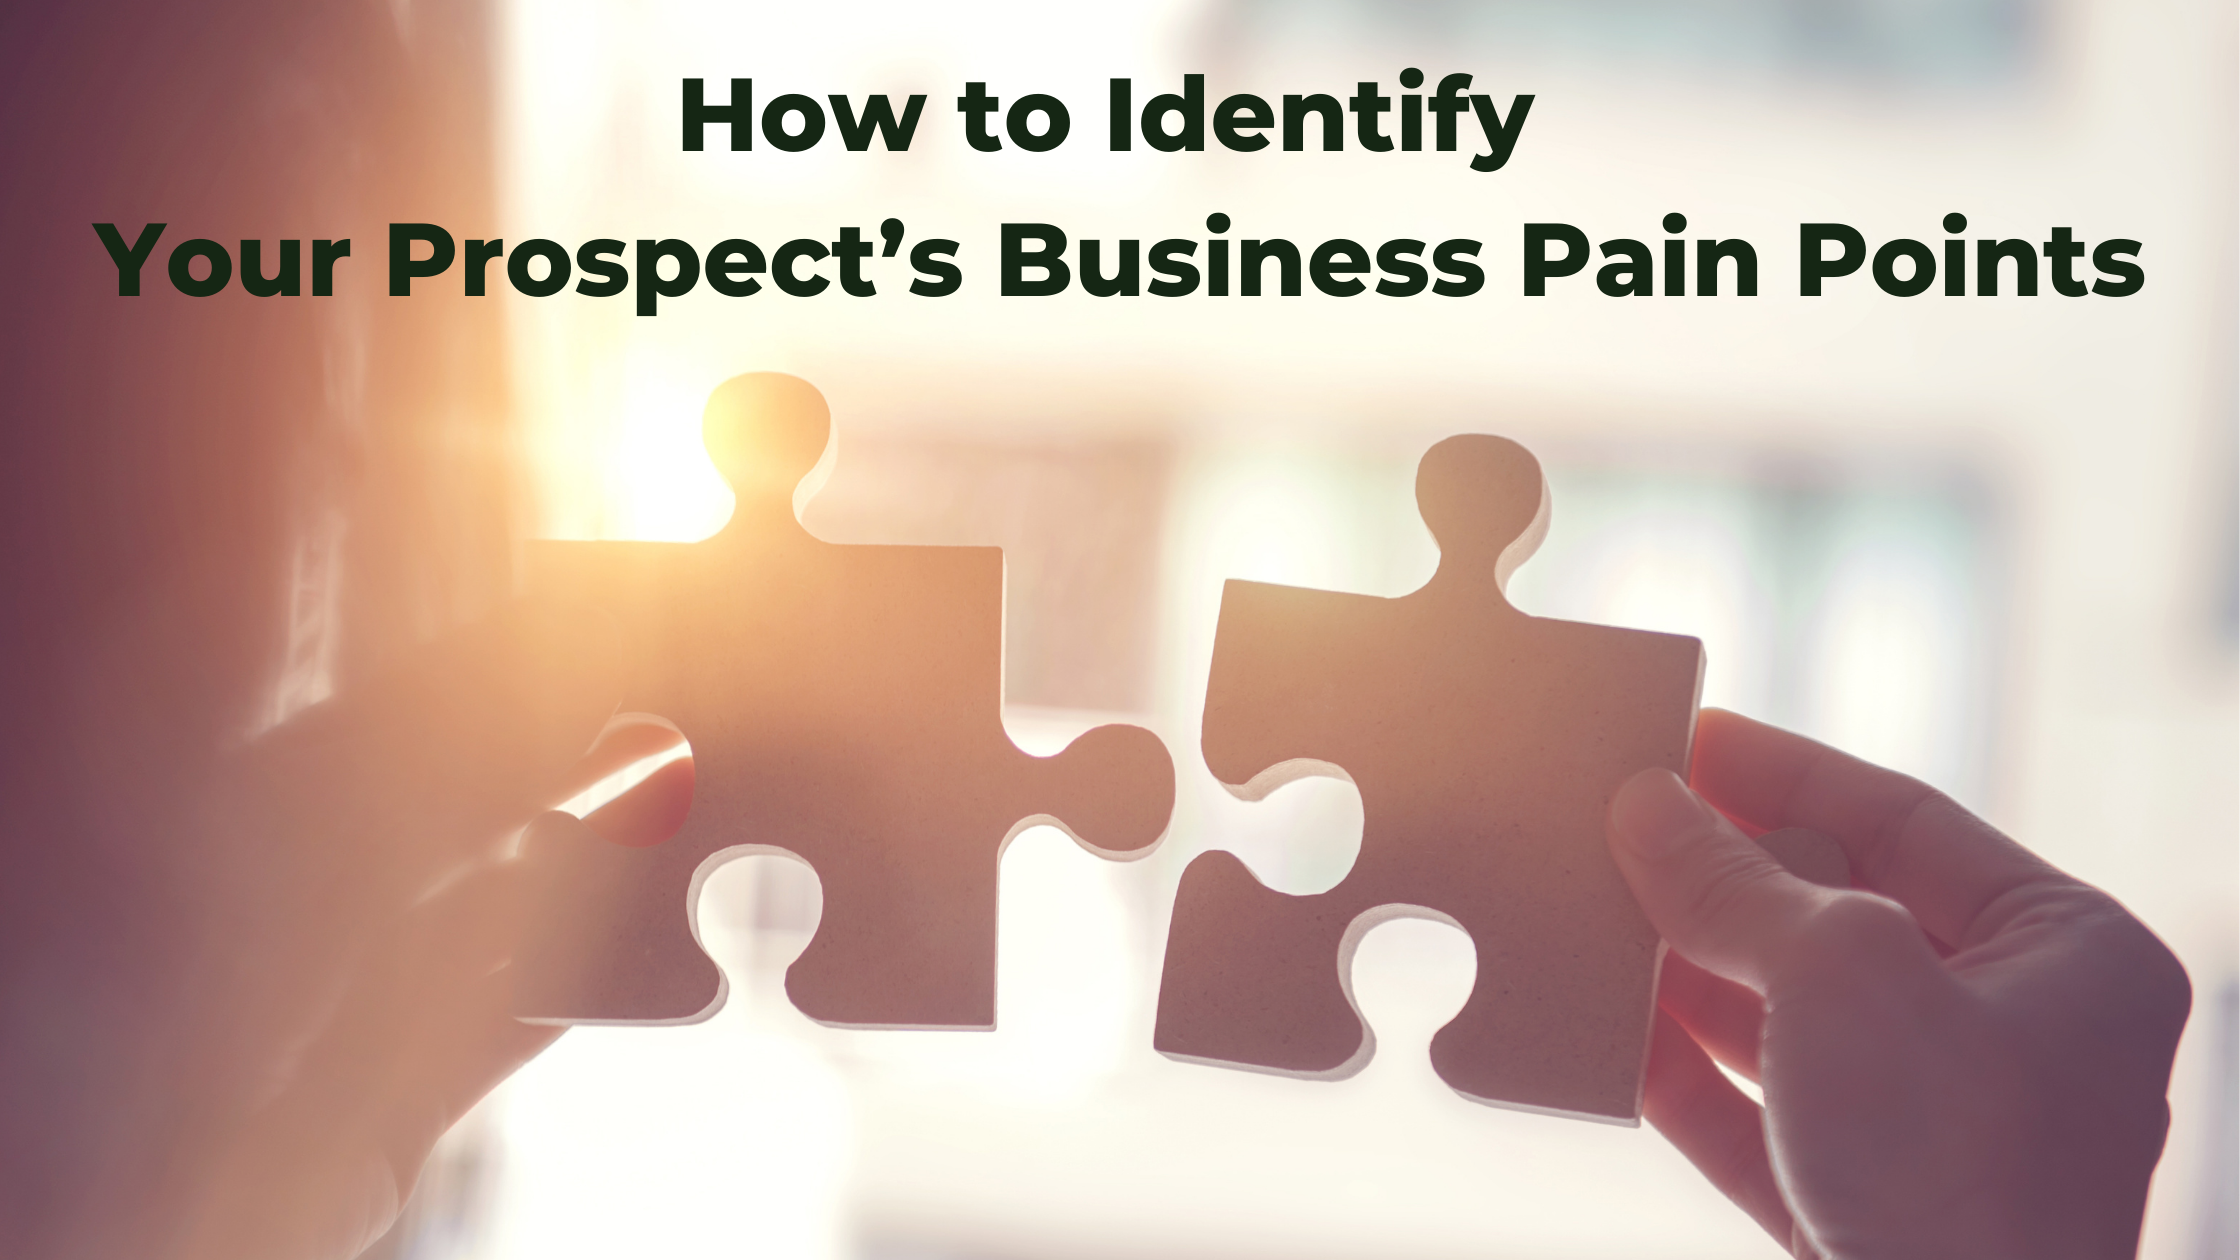 How to Identify Your Prospect's Business Pain Points